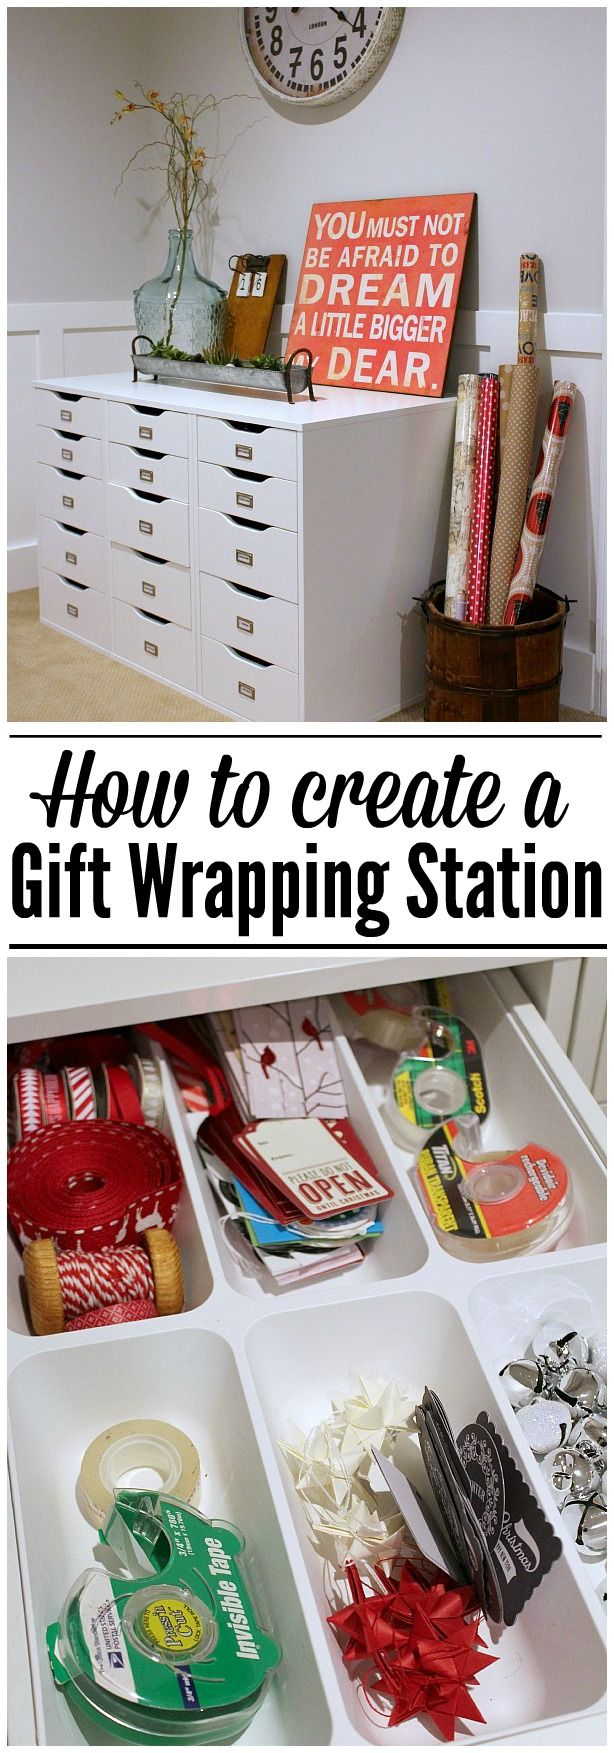 Gift wrap storage ideas - 17 Best Ideas About Gift Wrap Station On Pinterest Gift Wrap Storage Wrapping Paper Storage And Craft Station